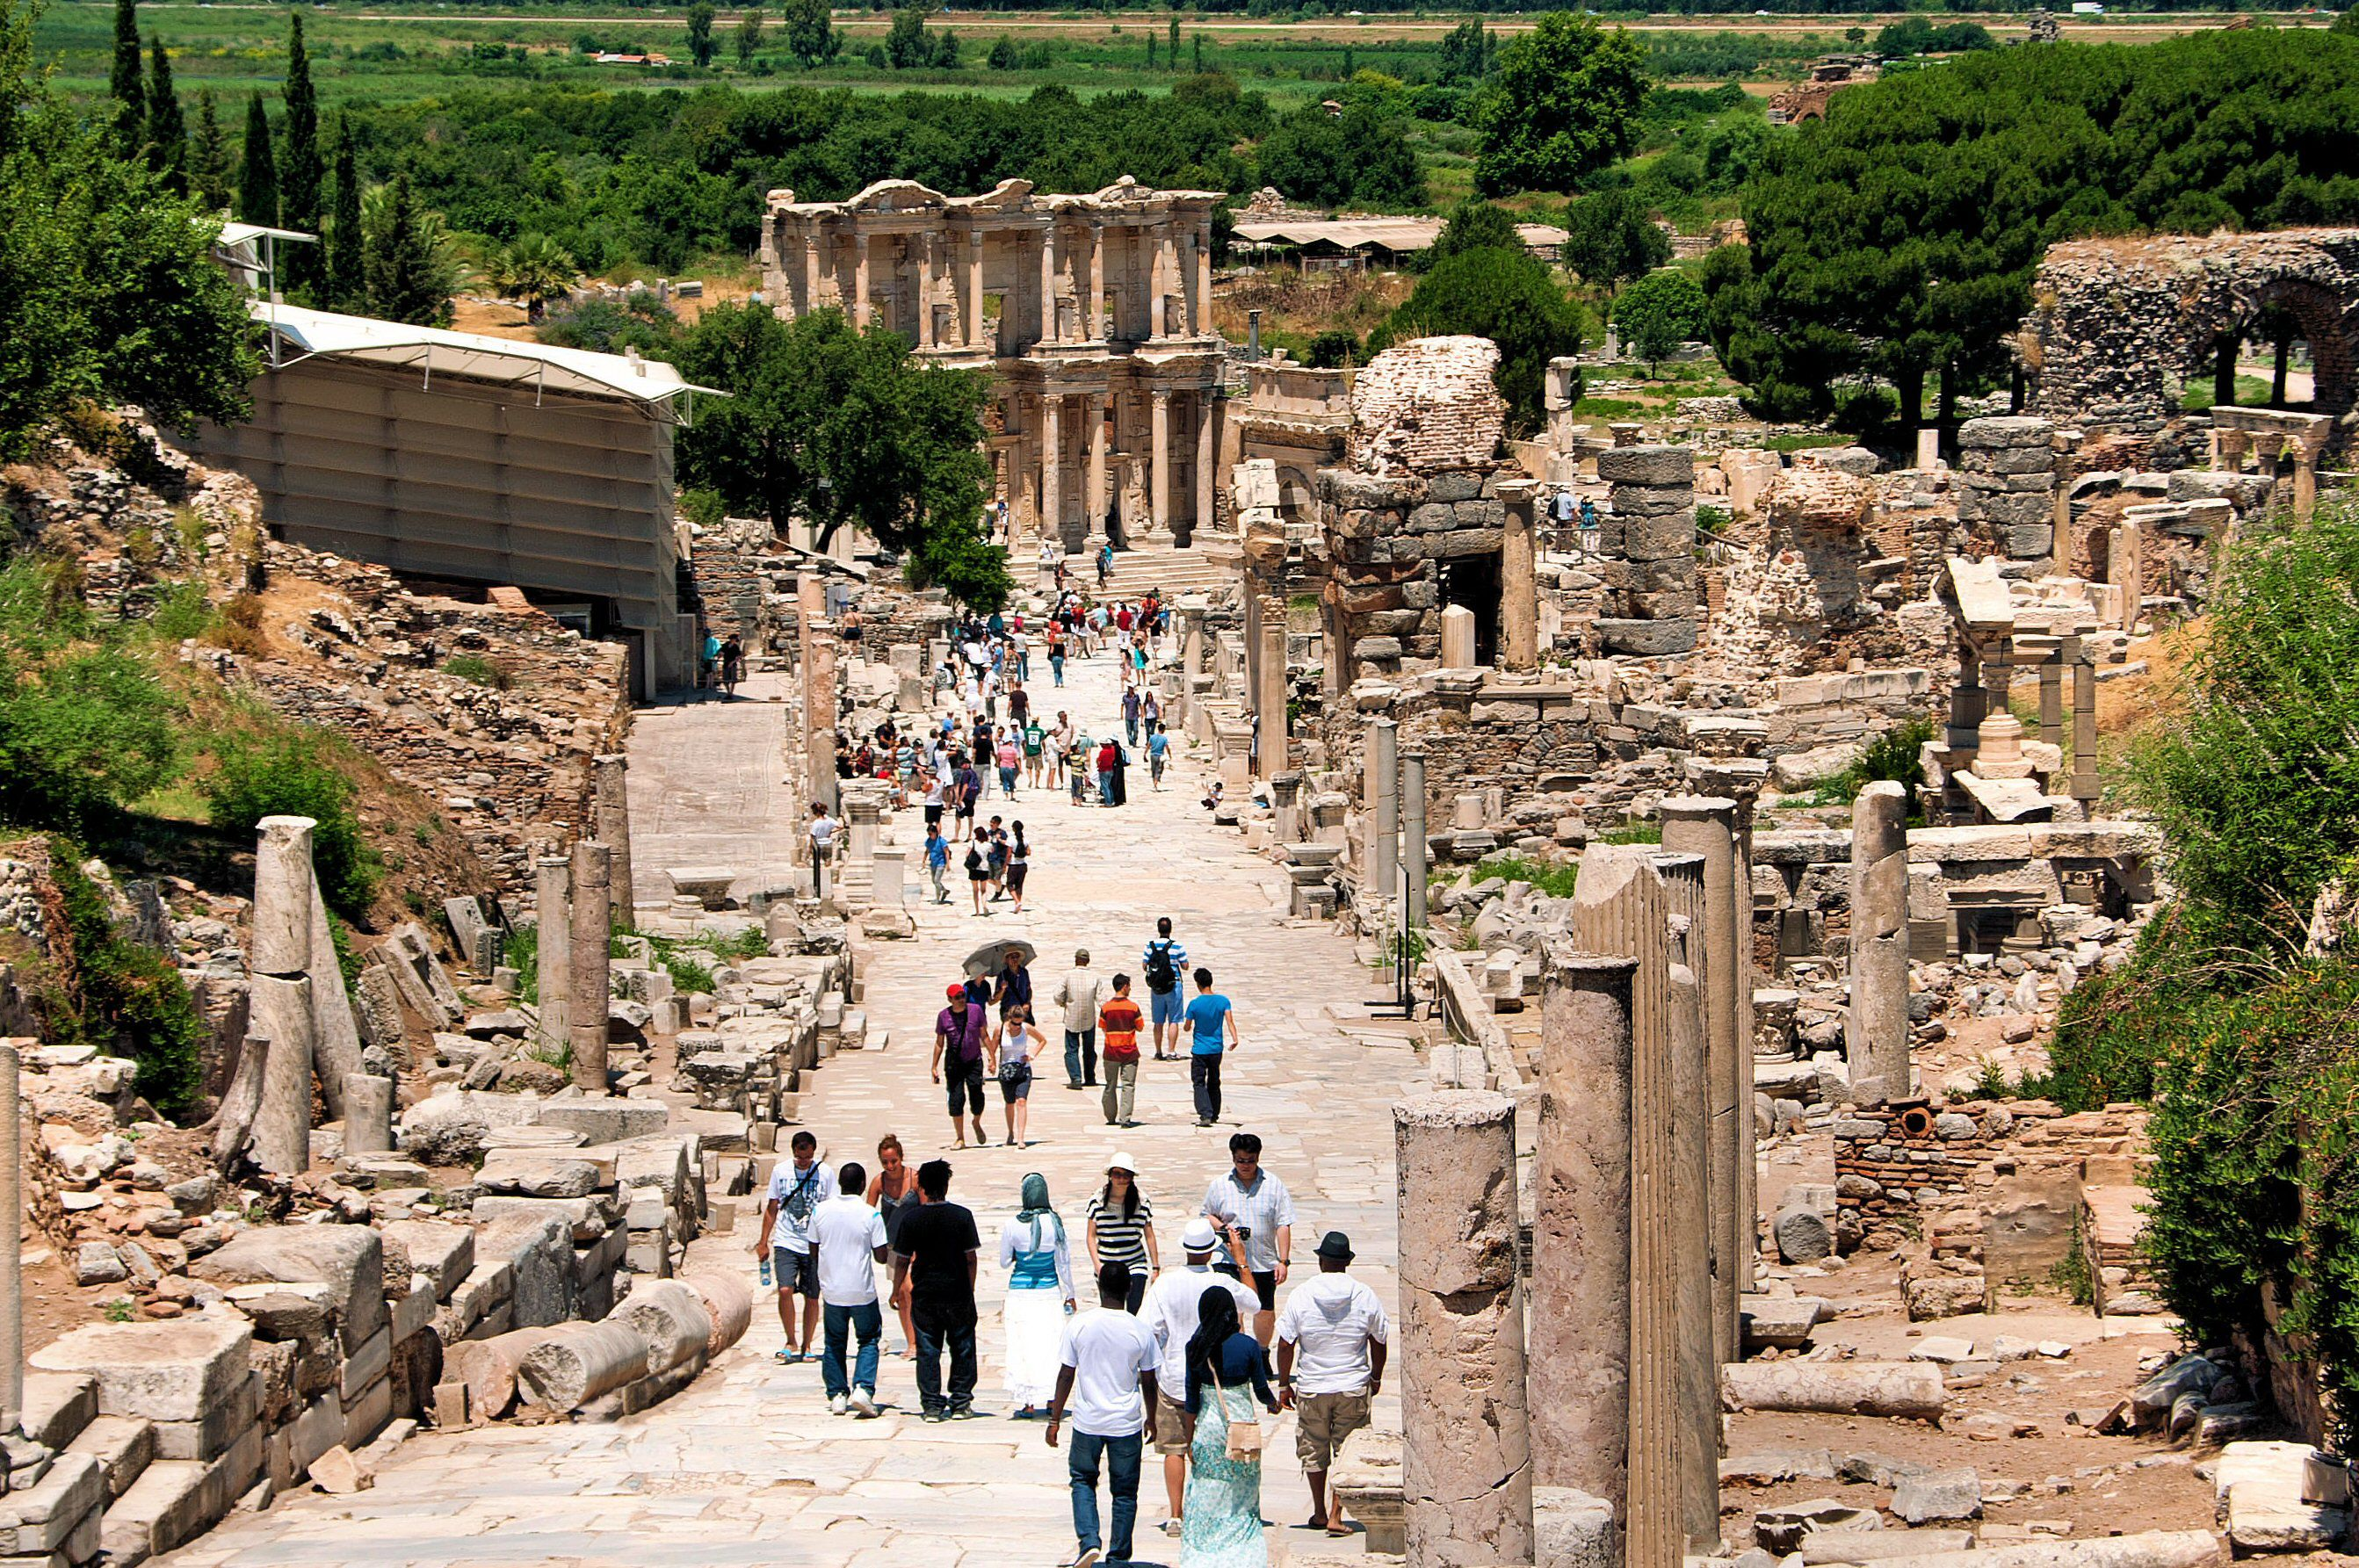 high angle looking at people walking amongst stone ruins of ancient architecture